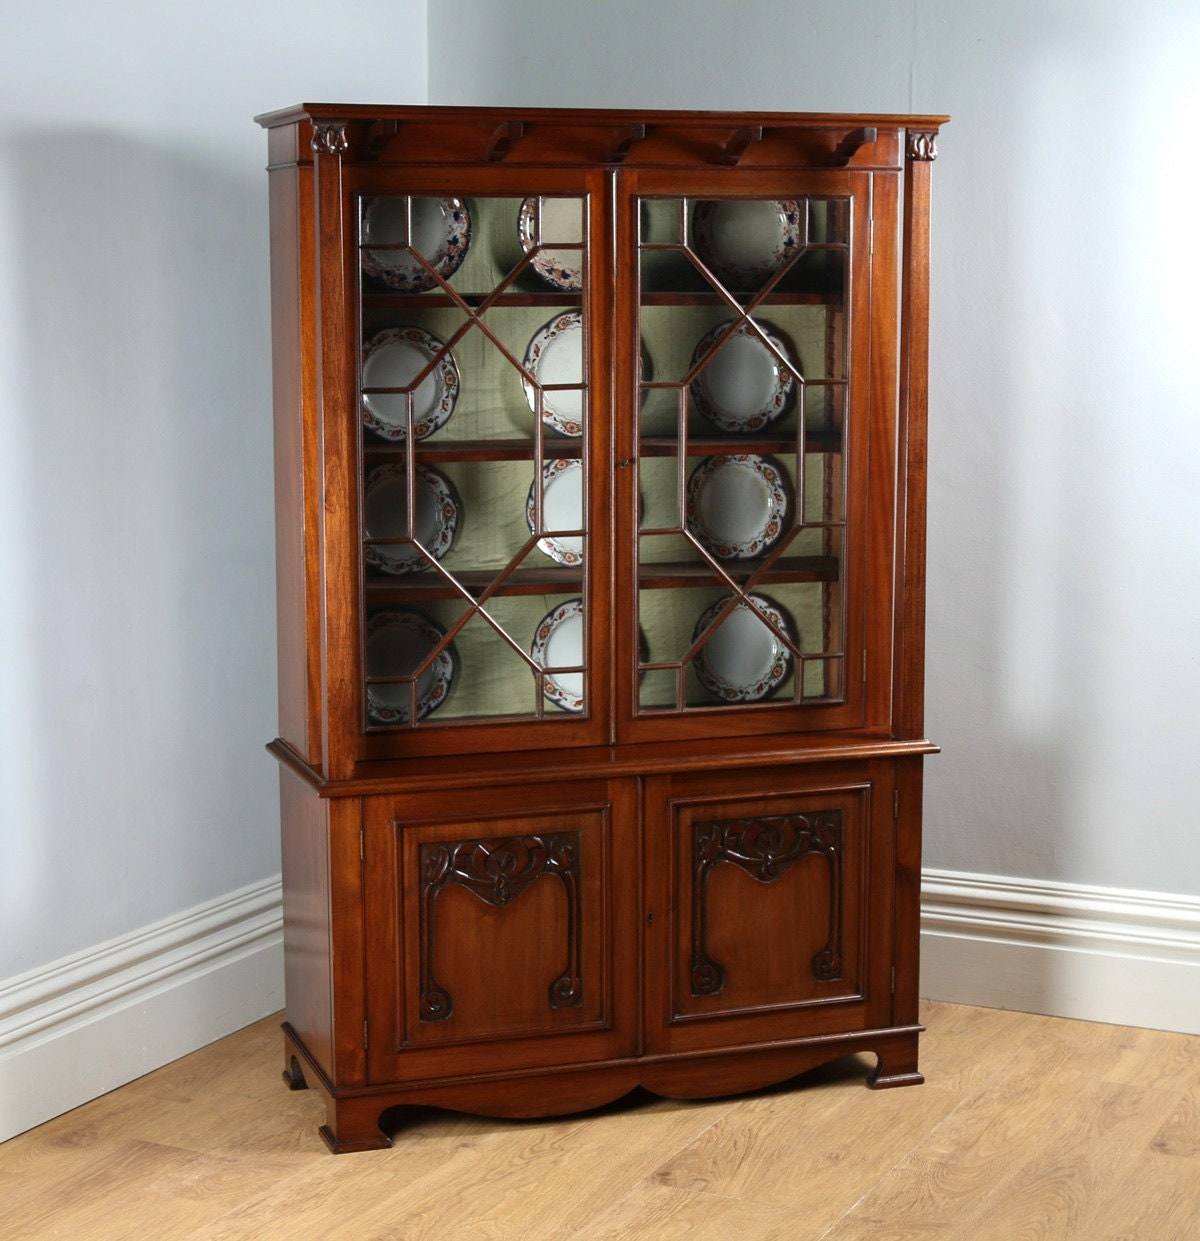 Antique English Victorian Art Nouveau Mahogany Glass Display Bookcase Cabinet Cupboard by James Schoolbred  Co. (Circa 1890)